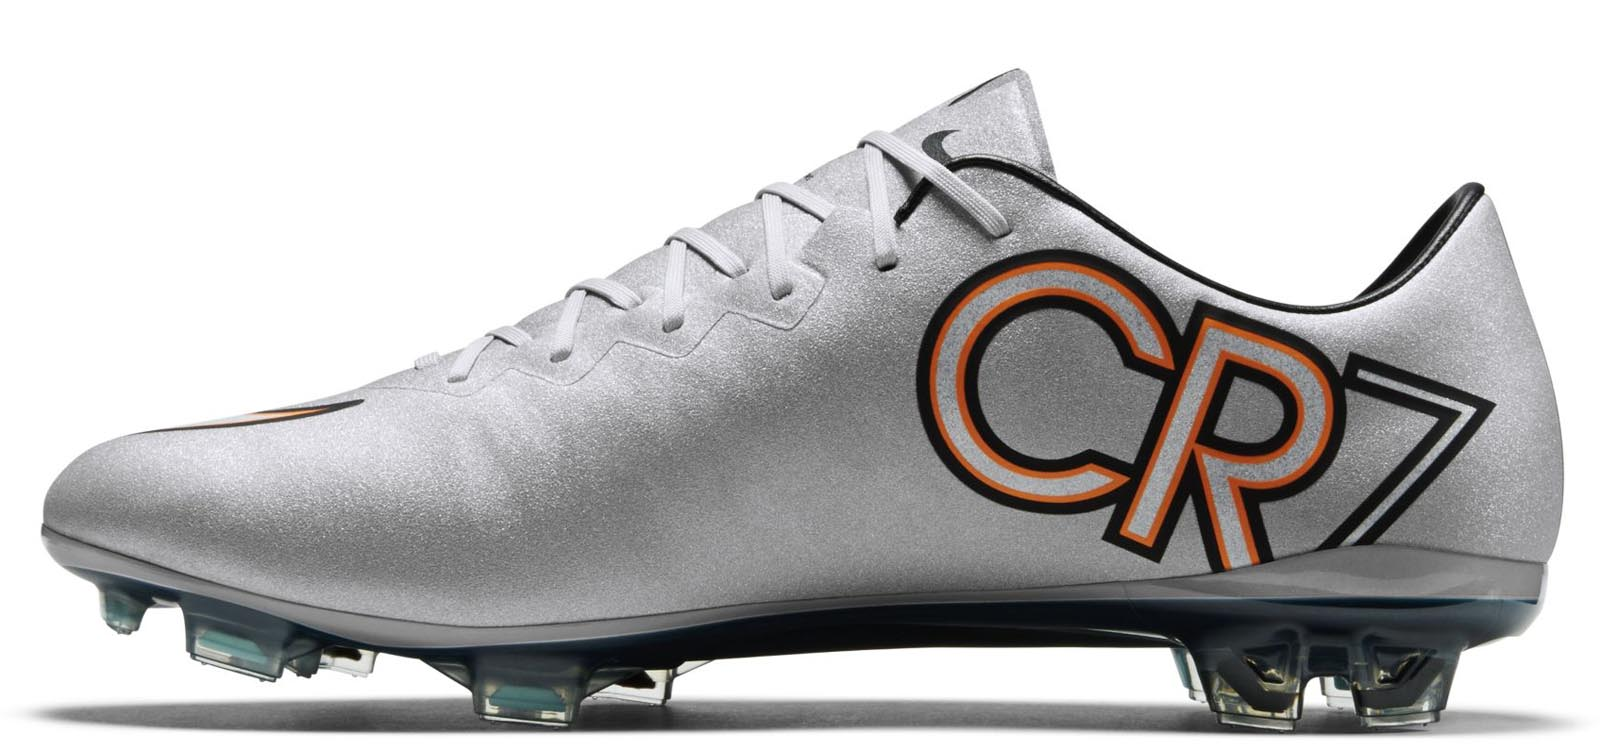 New Cristiano Ronaldo Cleats 2015